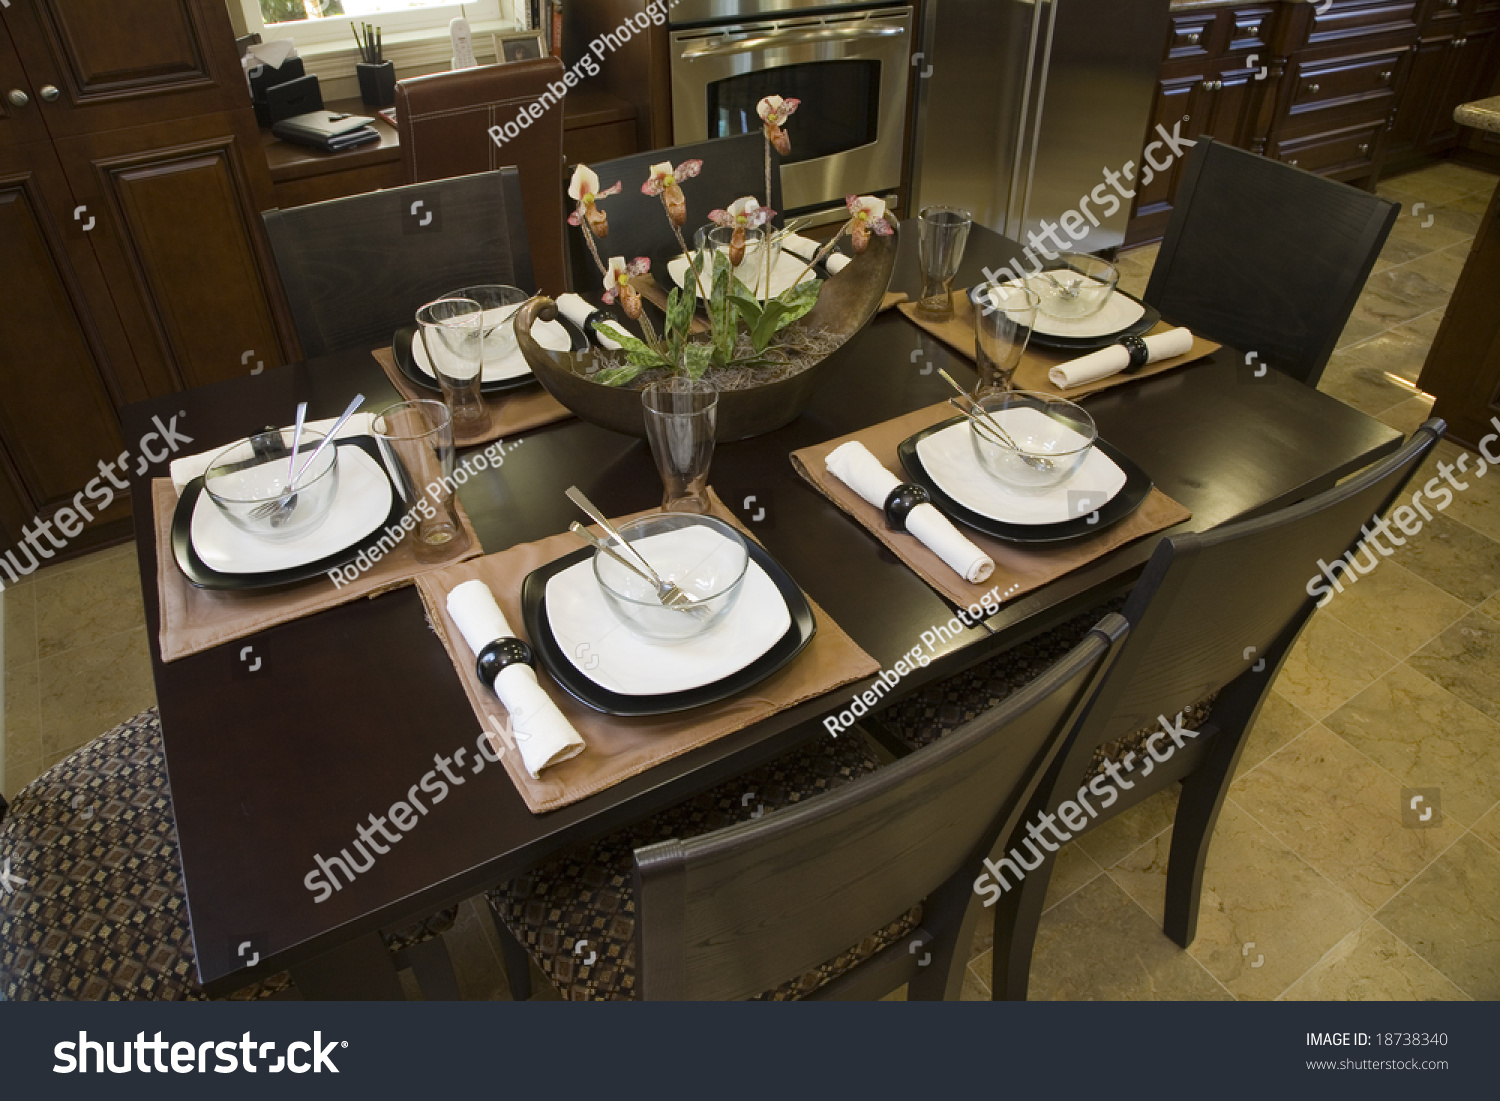 dining table with modern tableware and decor stock photo